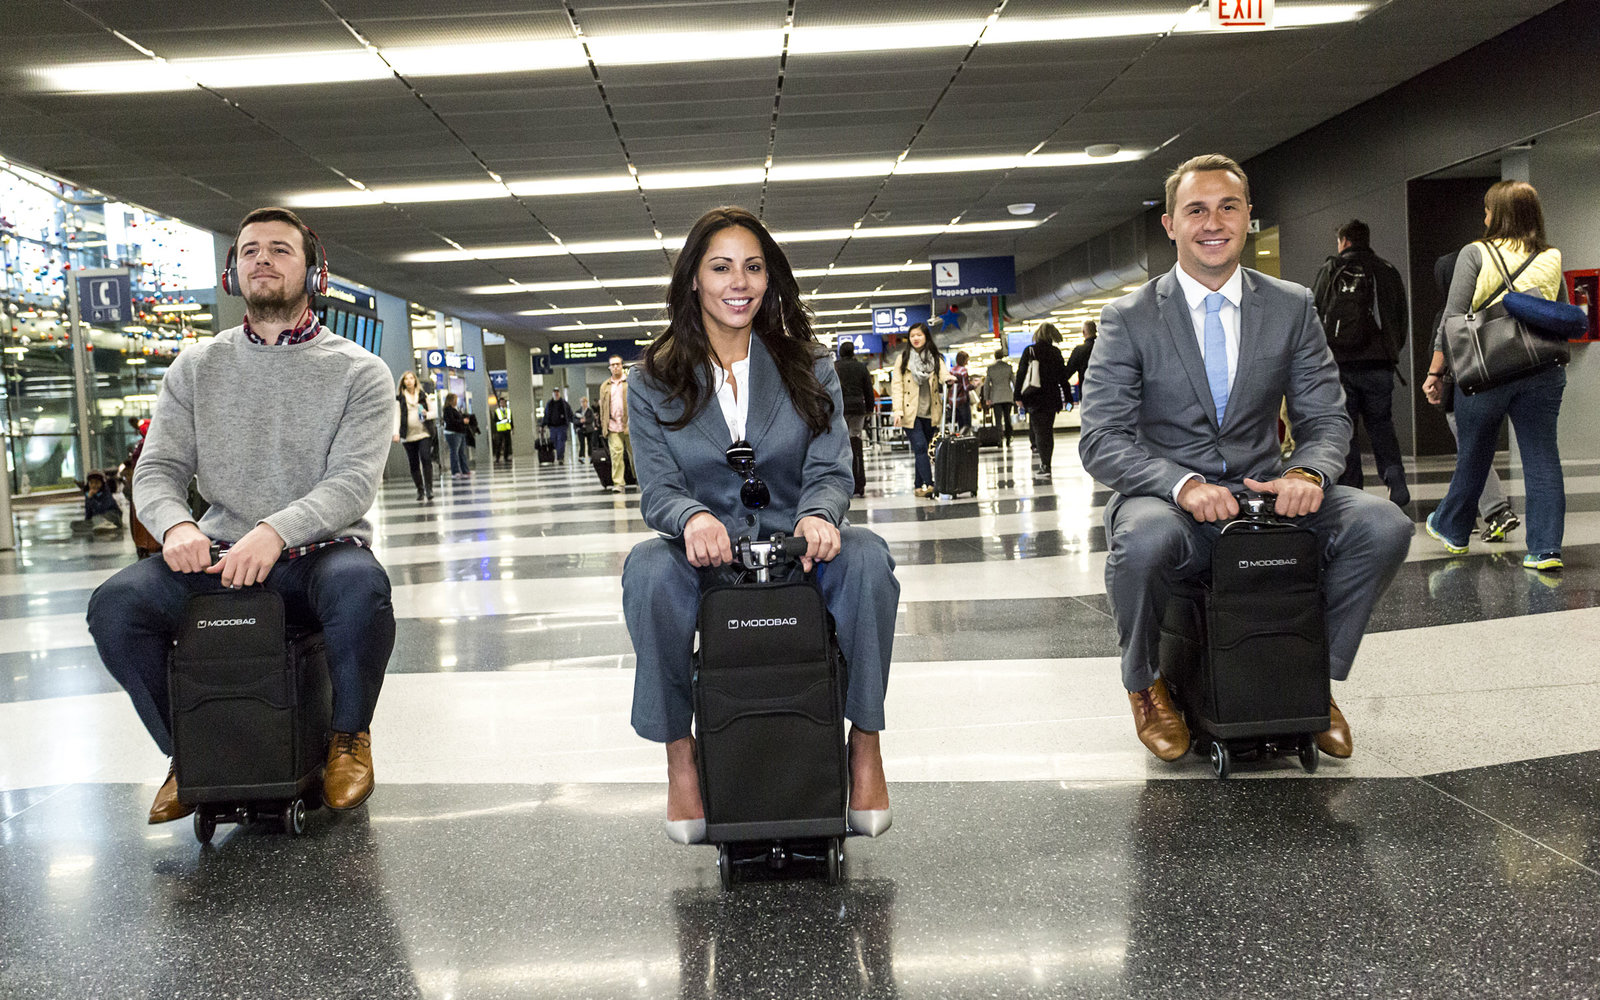 You can ride this suitcase around the airport | Travel   Leisure